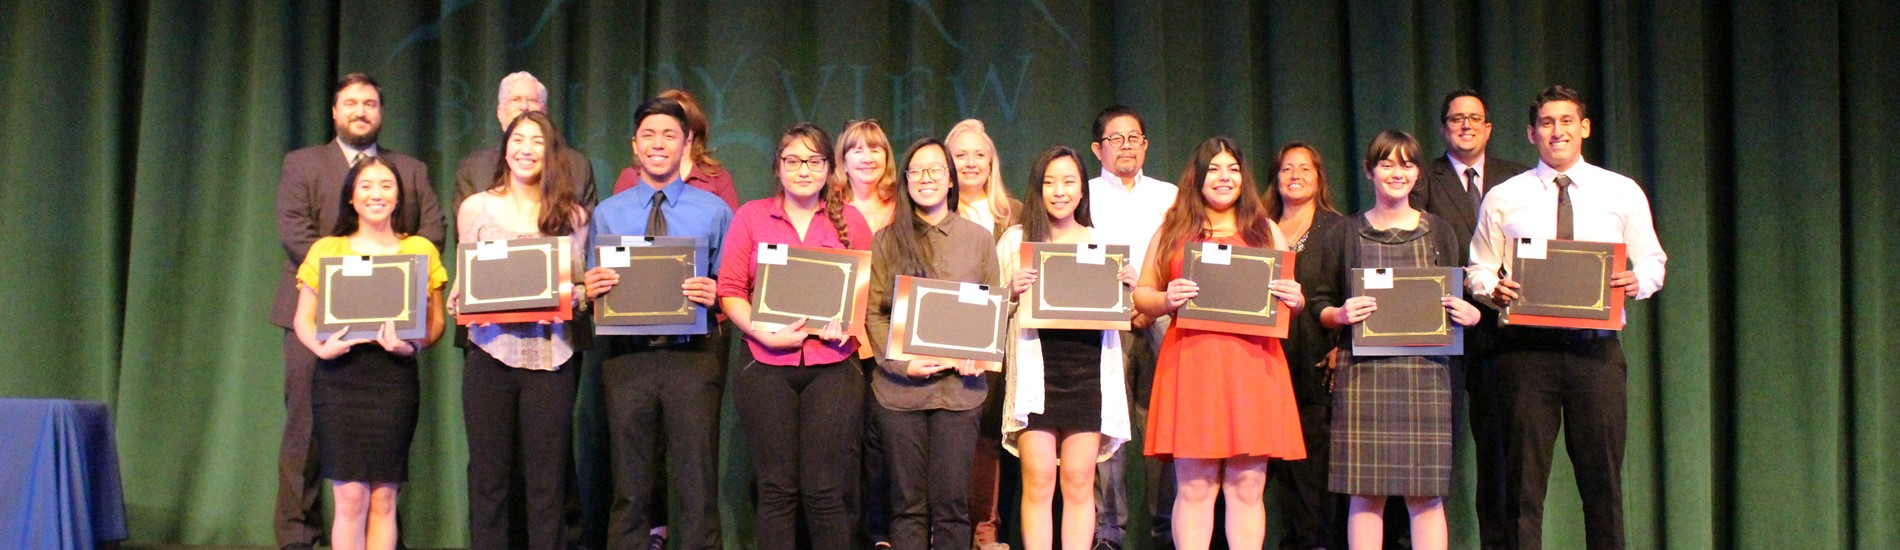 BVROP Foundation Scholarship Award Winners